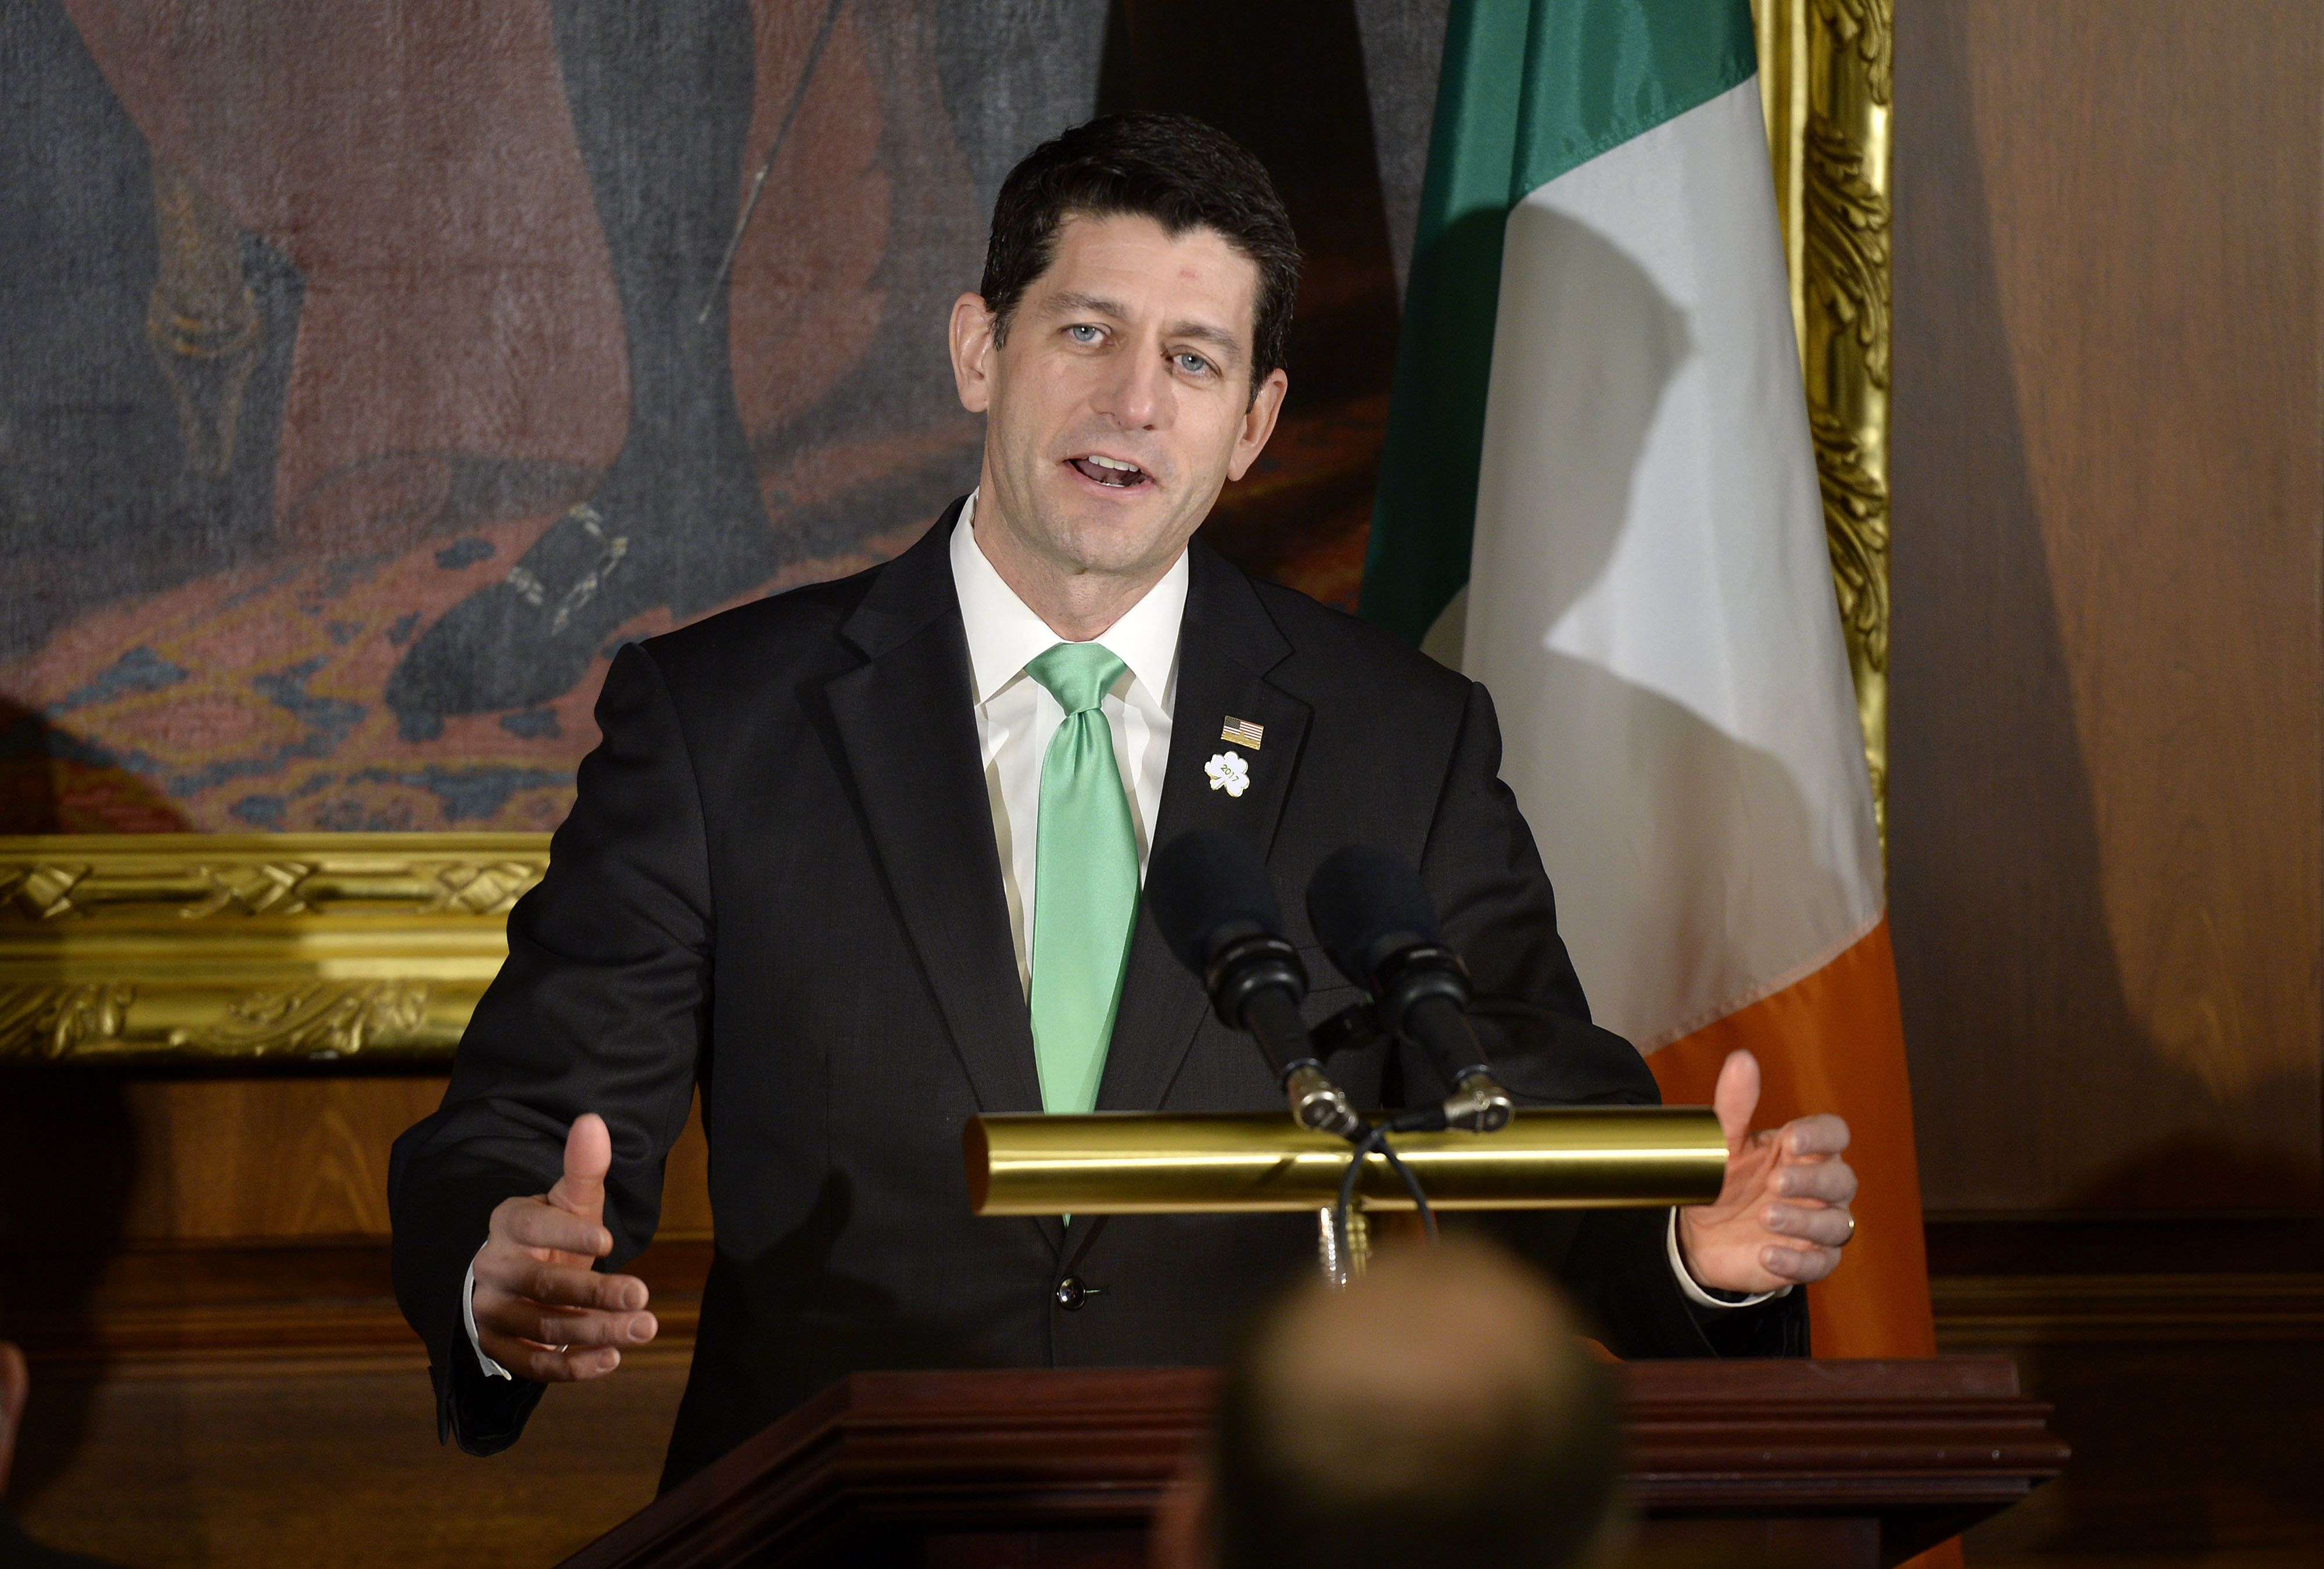 U.S. House Speaker Paul Ryan, a Republican from Wisconsin, speaks during the Friends of Ireland Luncheon at the U.S. Capitol in Washington, D.C., U.S., on Thursday, March 16, 2017. As the Trump administration vows to upend international trade accords, including pulling out of the North American Free Trade Agreement, German Chancellor Angela Merkel's government has redoubled its support for multilateral trade arrangements.Photographer: Olivier Douliery/Pool via Bloomberg